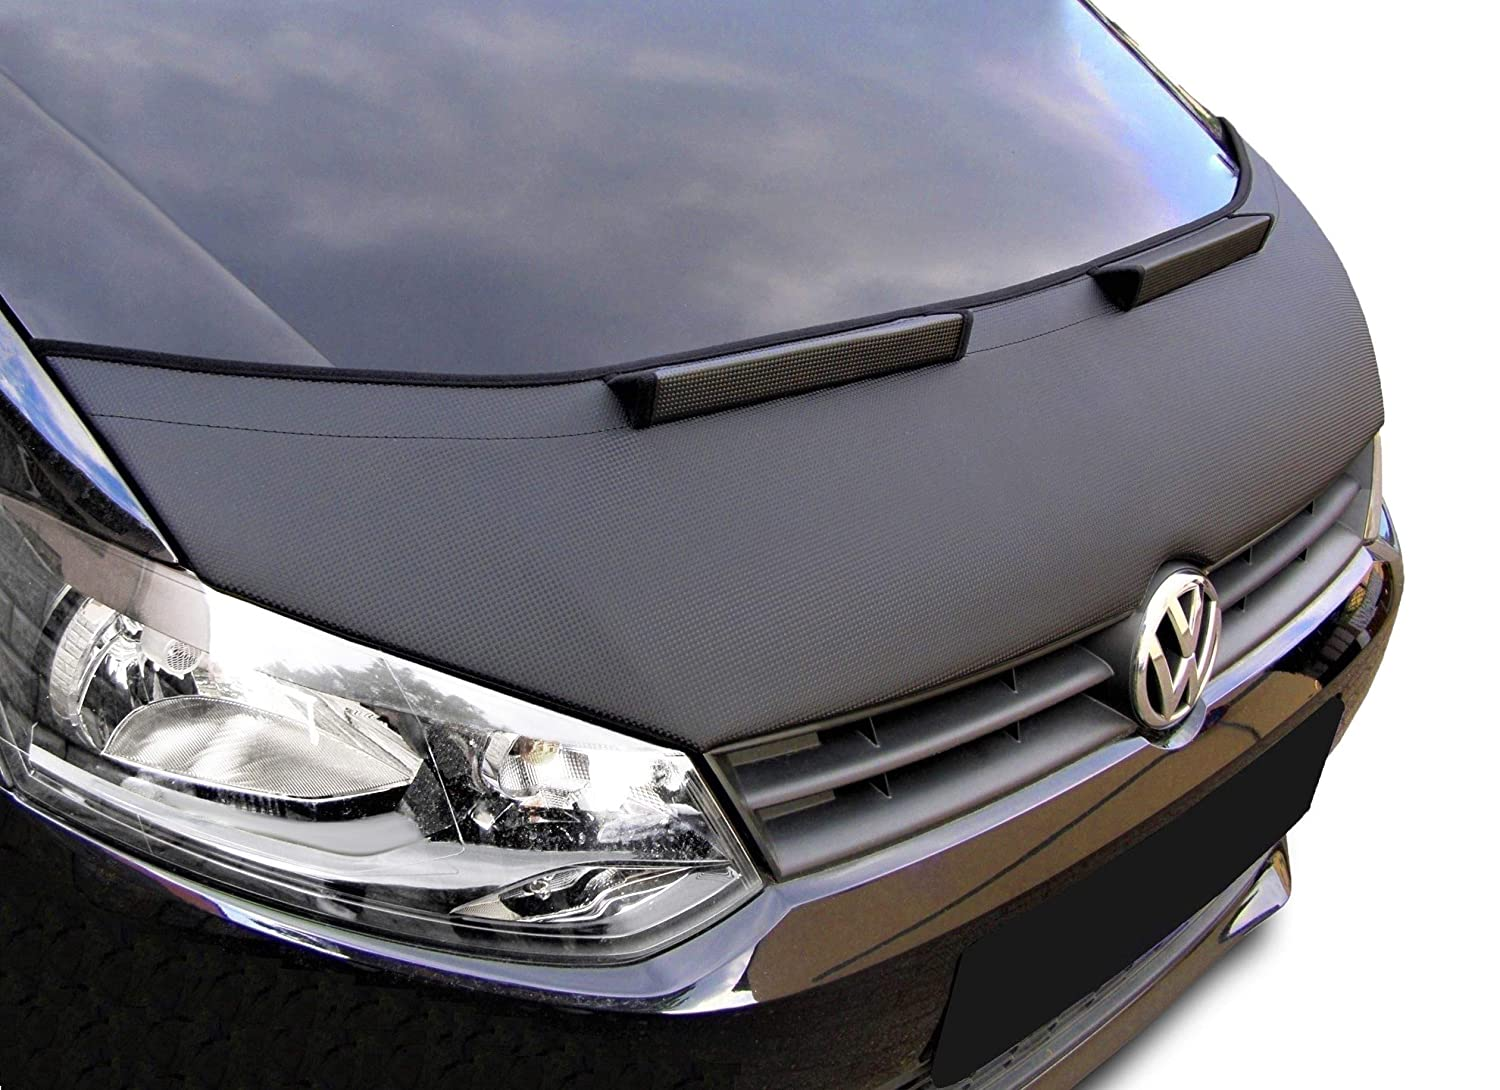 Bonnet bra Polo 5 6R CARBON Stoneguard Protector Hood Bra Car Bonnet Front End Mask Cover Tuning NEW